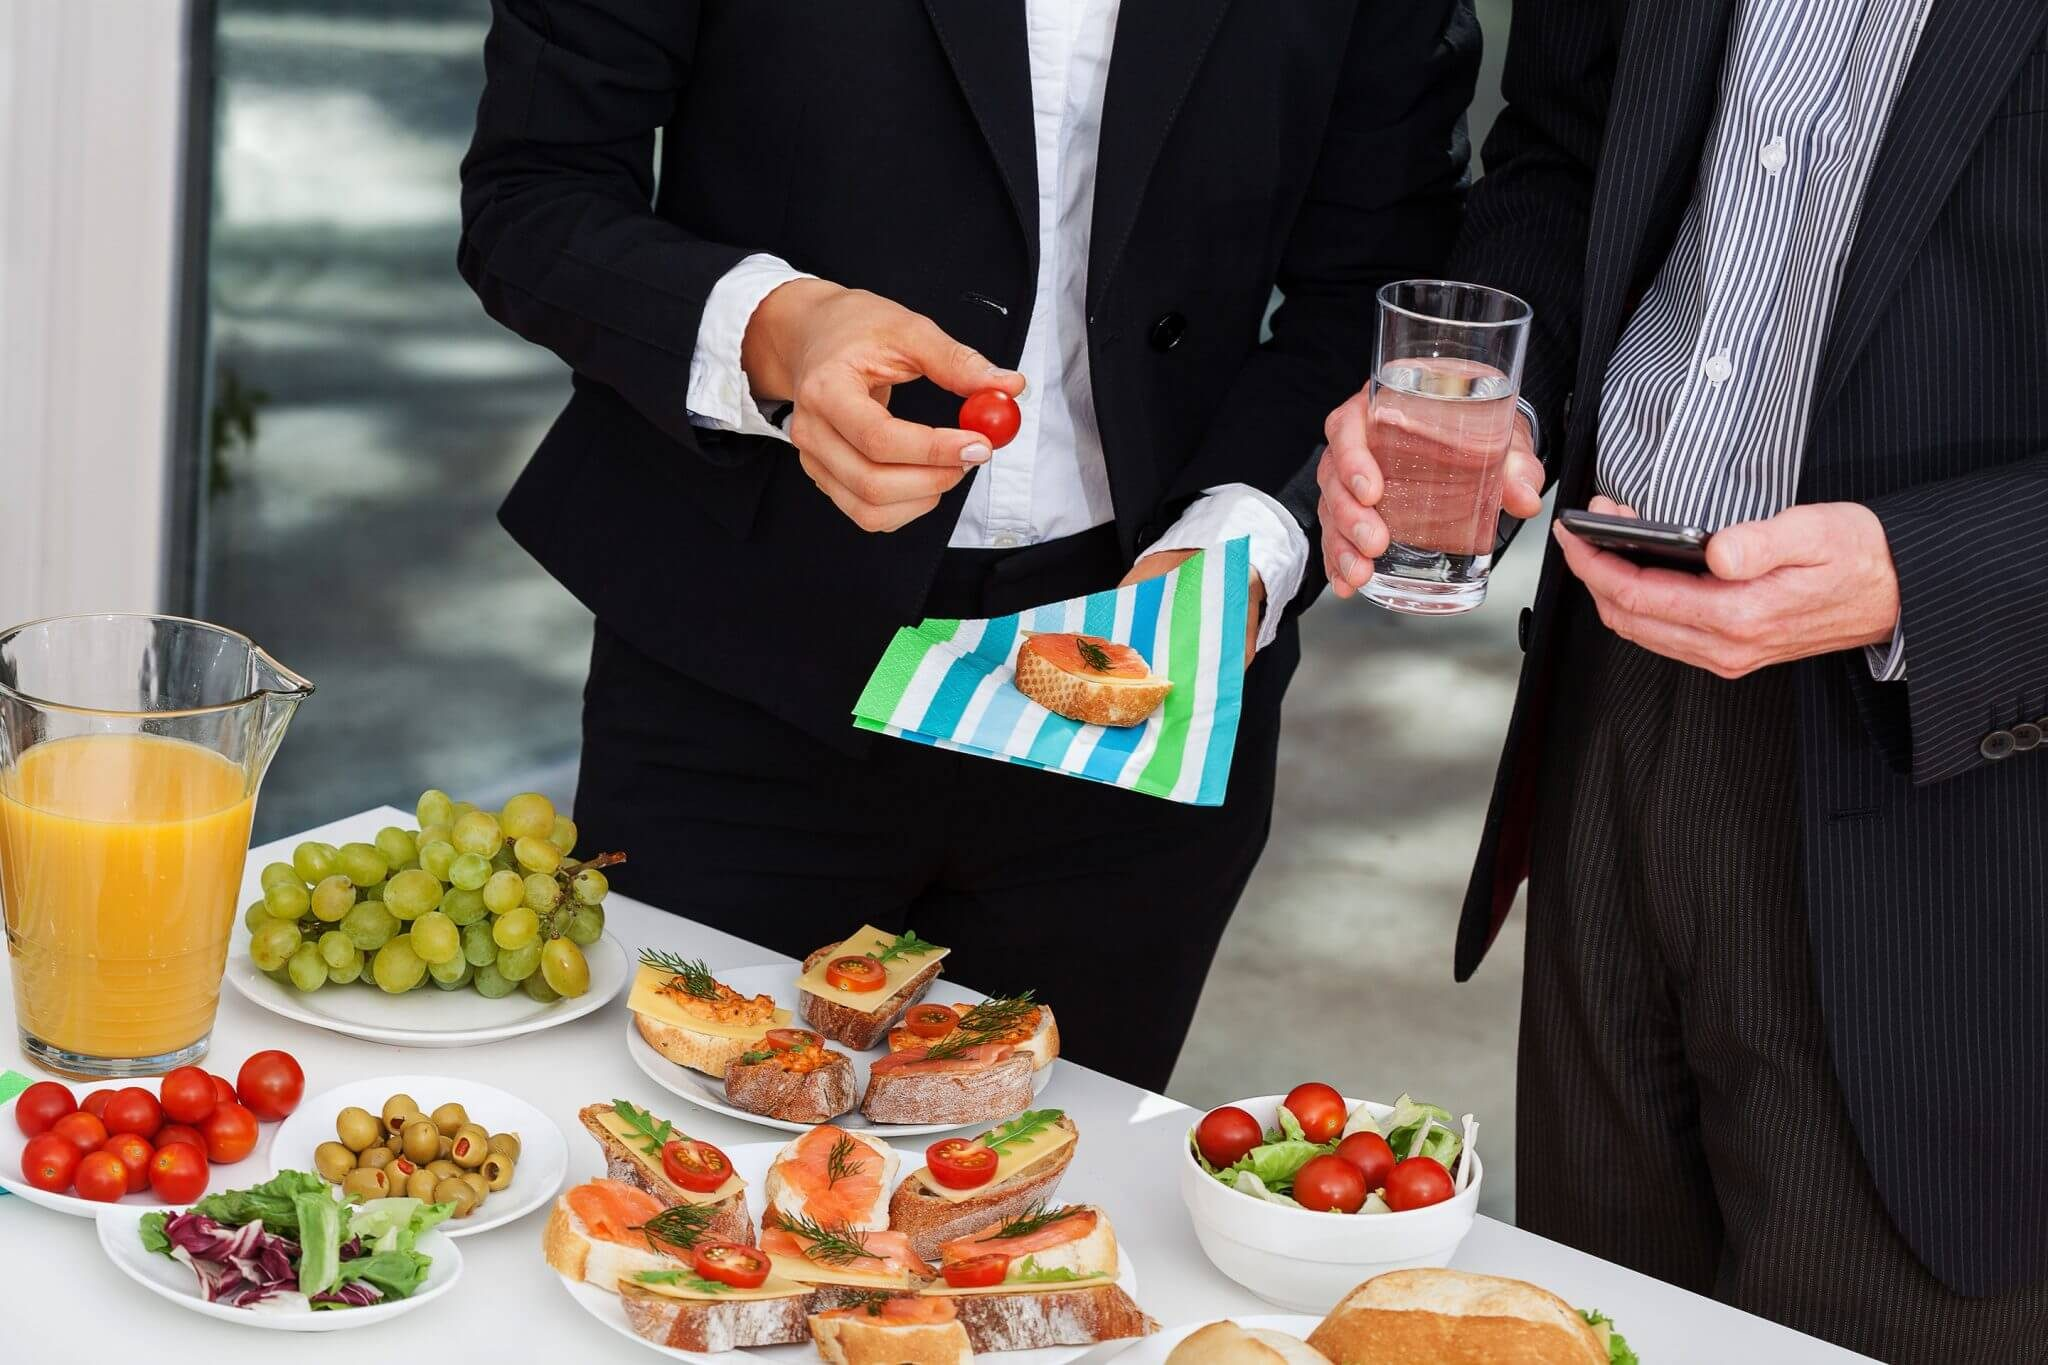 We have established ourselves as one of the fastest growing enterprises, actively committed towards providing Business Meetings Catering Service. This service is provided in a well-organized manner to sustain efficient and effective results. Our professionals are extremely focused thus ensuring personnel safety and customer satisfaction by executing it in best possible manner. This service is highly admired by our clients for its reliability and cost-effectiveness. Under this service, our experts take care of everything right from the food to decoration.   #Business-meetings-catering-service-in-vadodara. |Business Meetings Catering Service in vadodara|